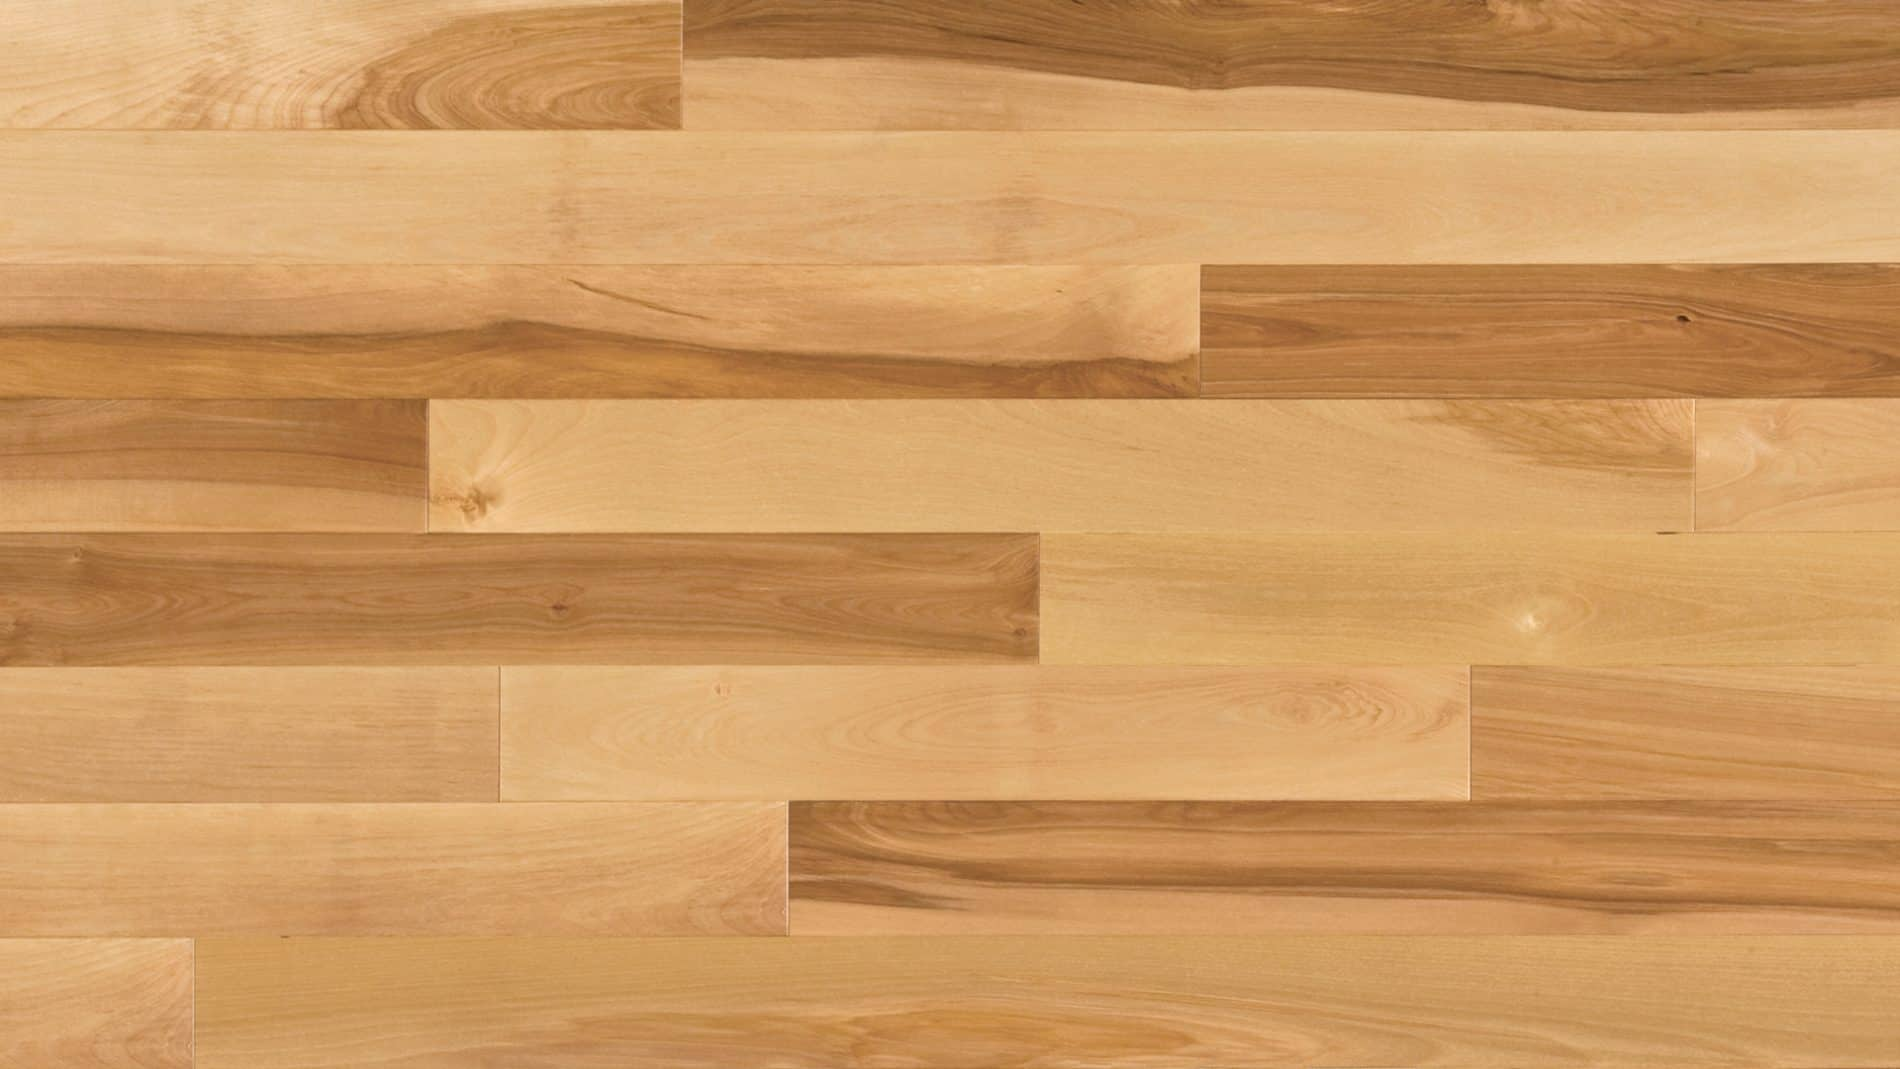 Birch hardwood flooring home flooring reference for Birch hardwood flooring